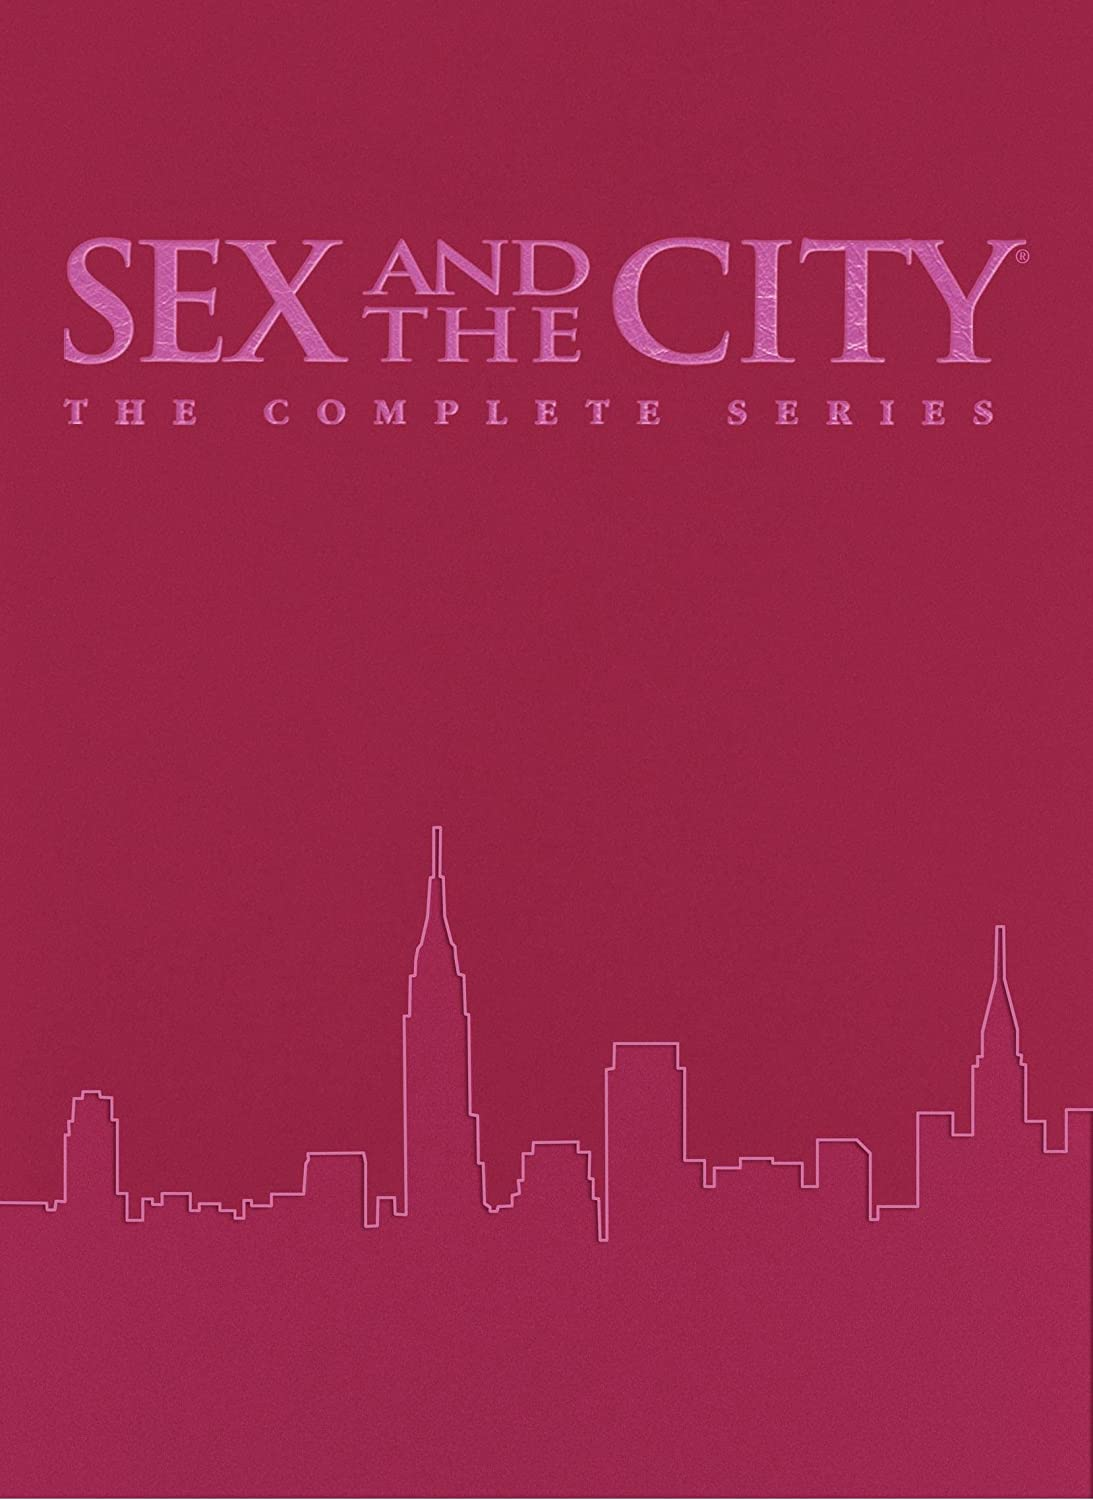 Sex and the city product